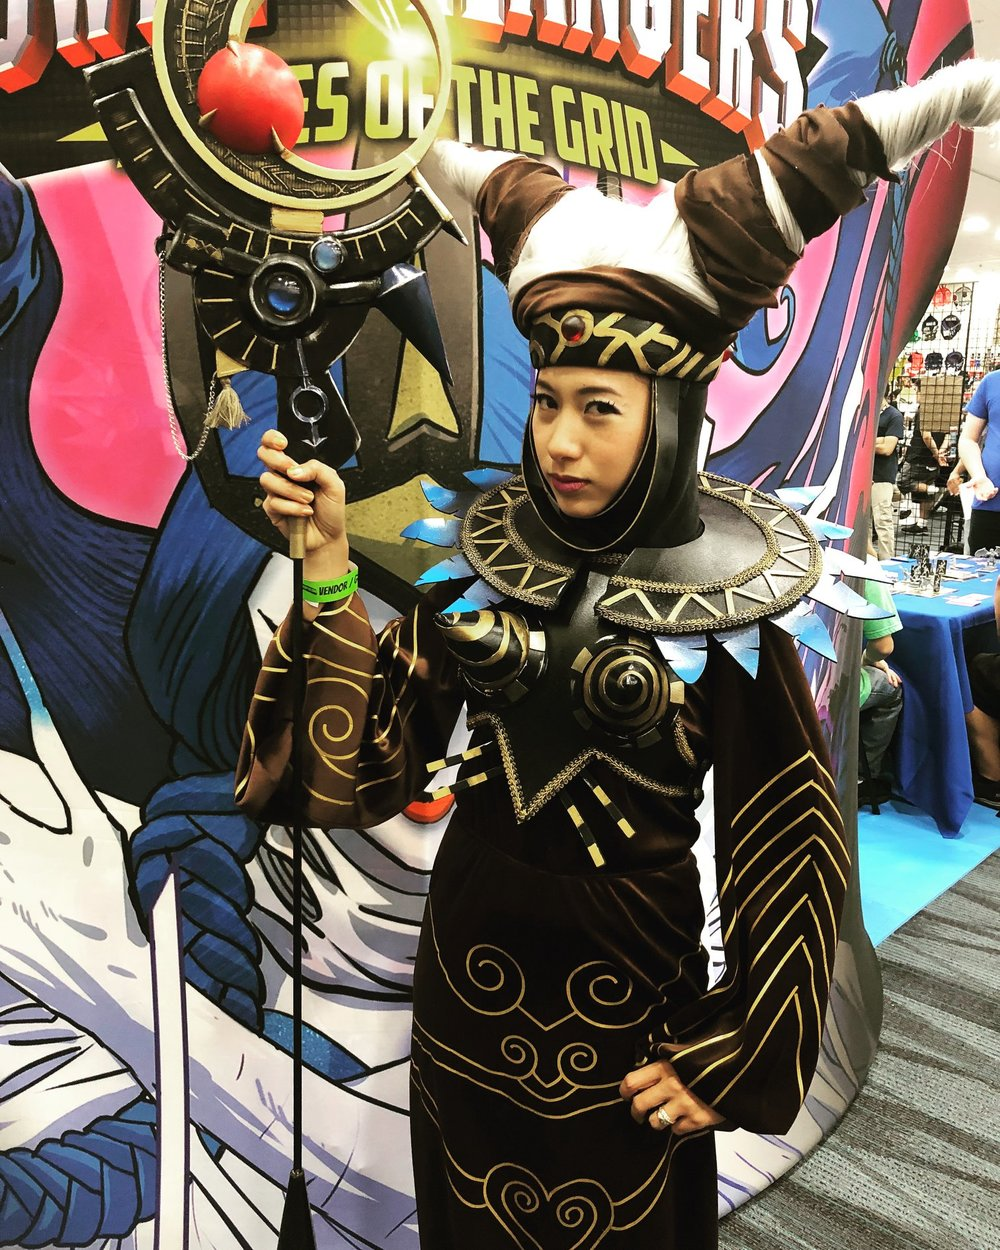 Malika Lim as Rita Repulsa!